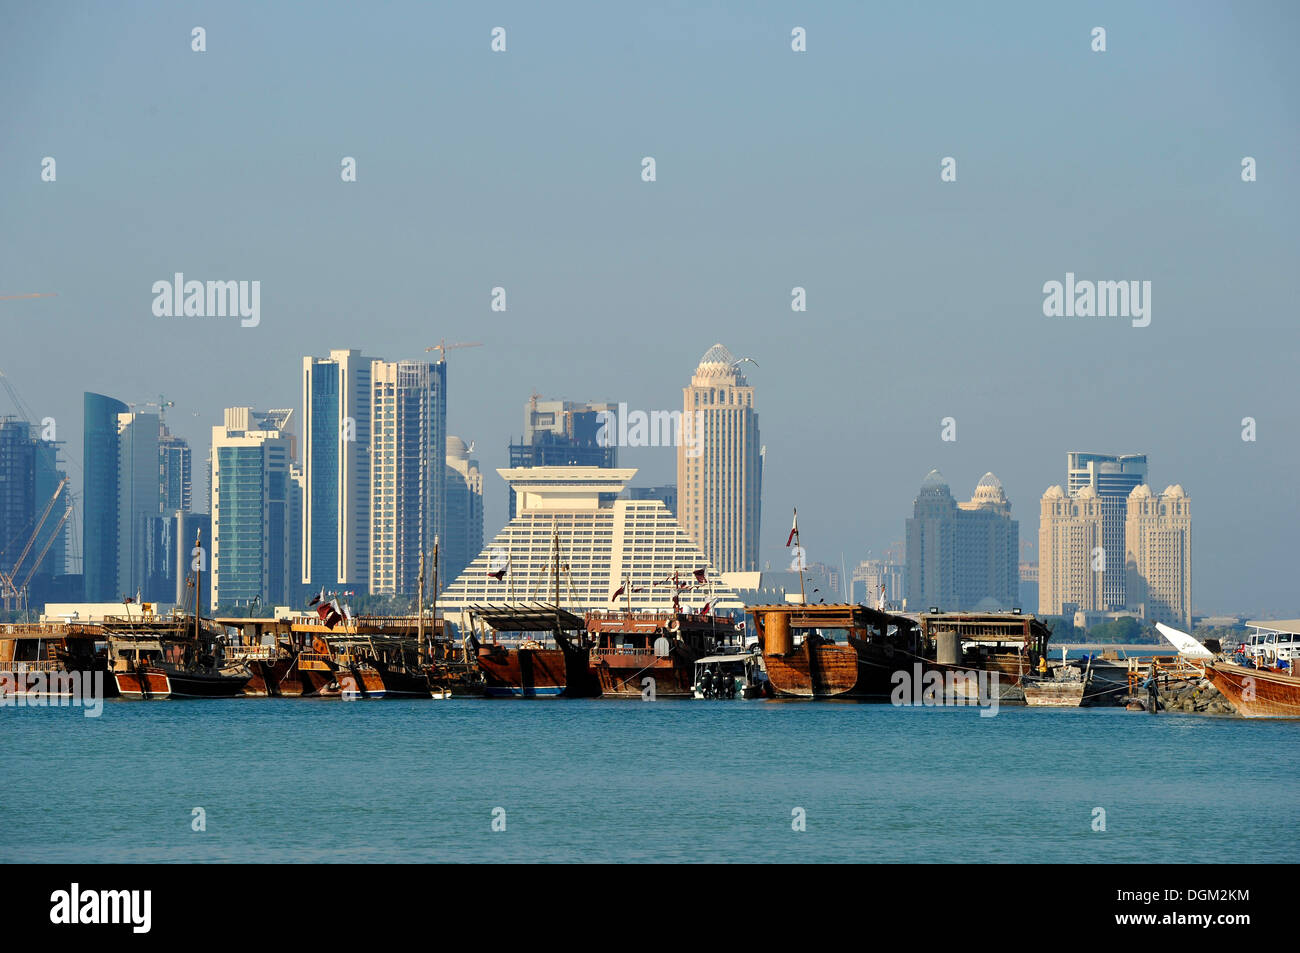 Tradition and modernity, dhow wooden cargo ships in front of the skyline of Doha, Qatar, Persian Gulf, Middle East, Asia - Stock Image